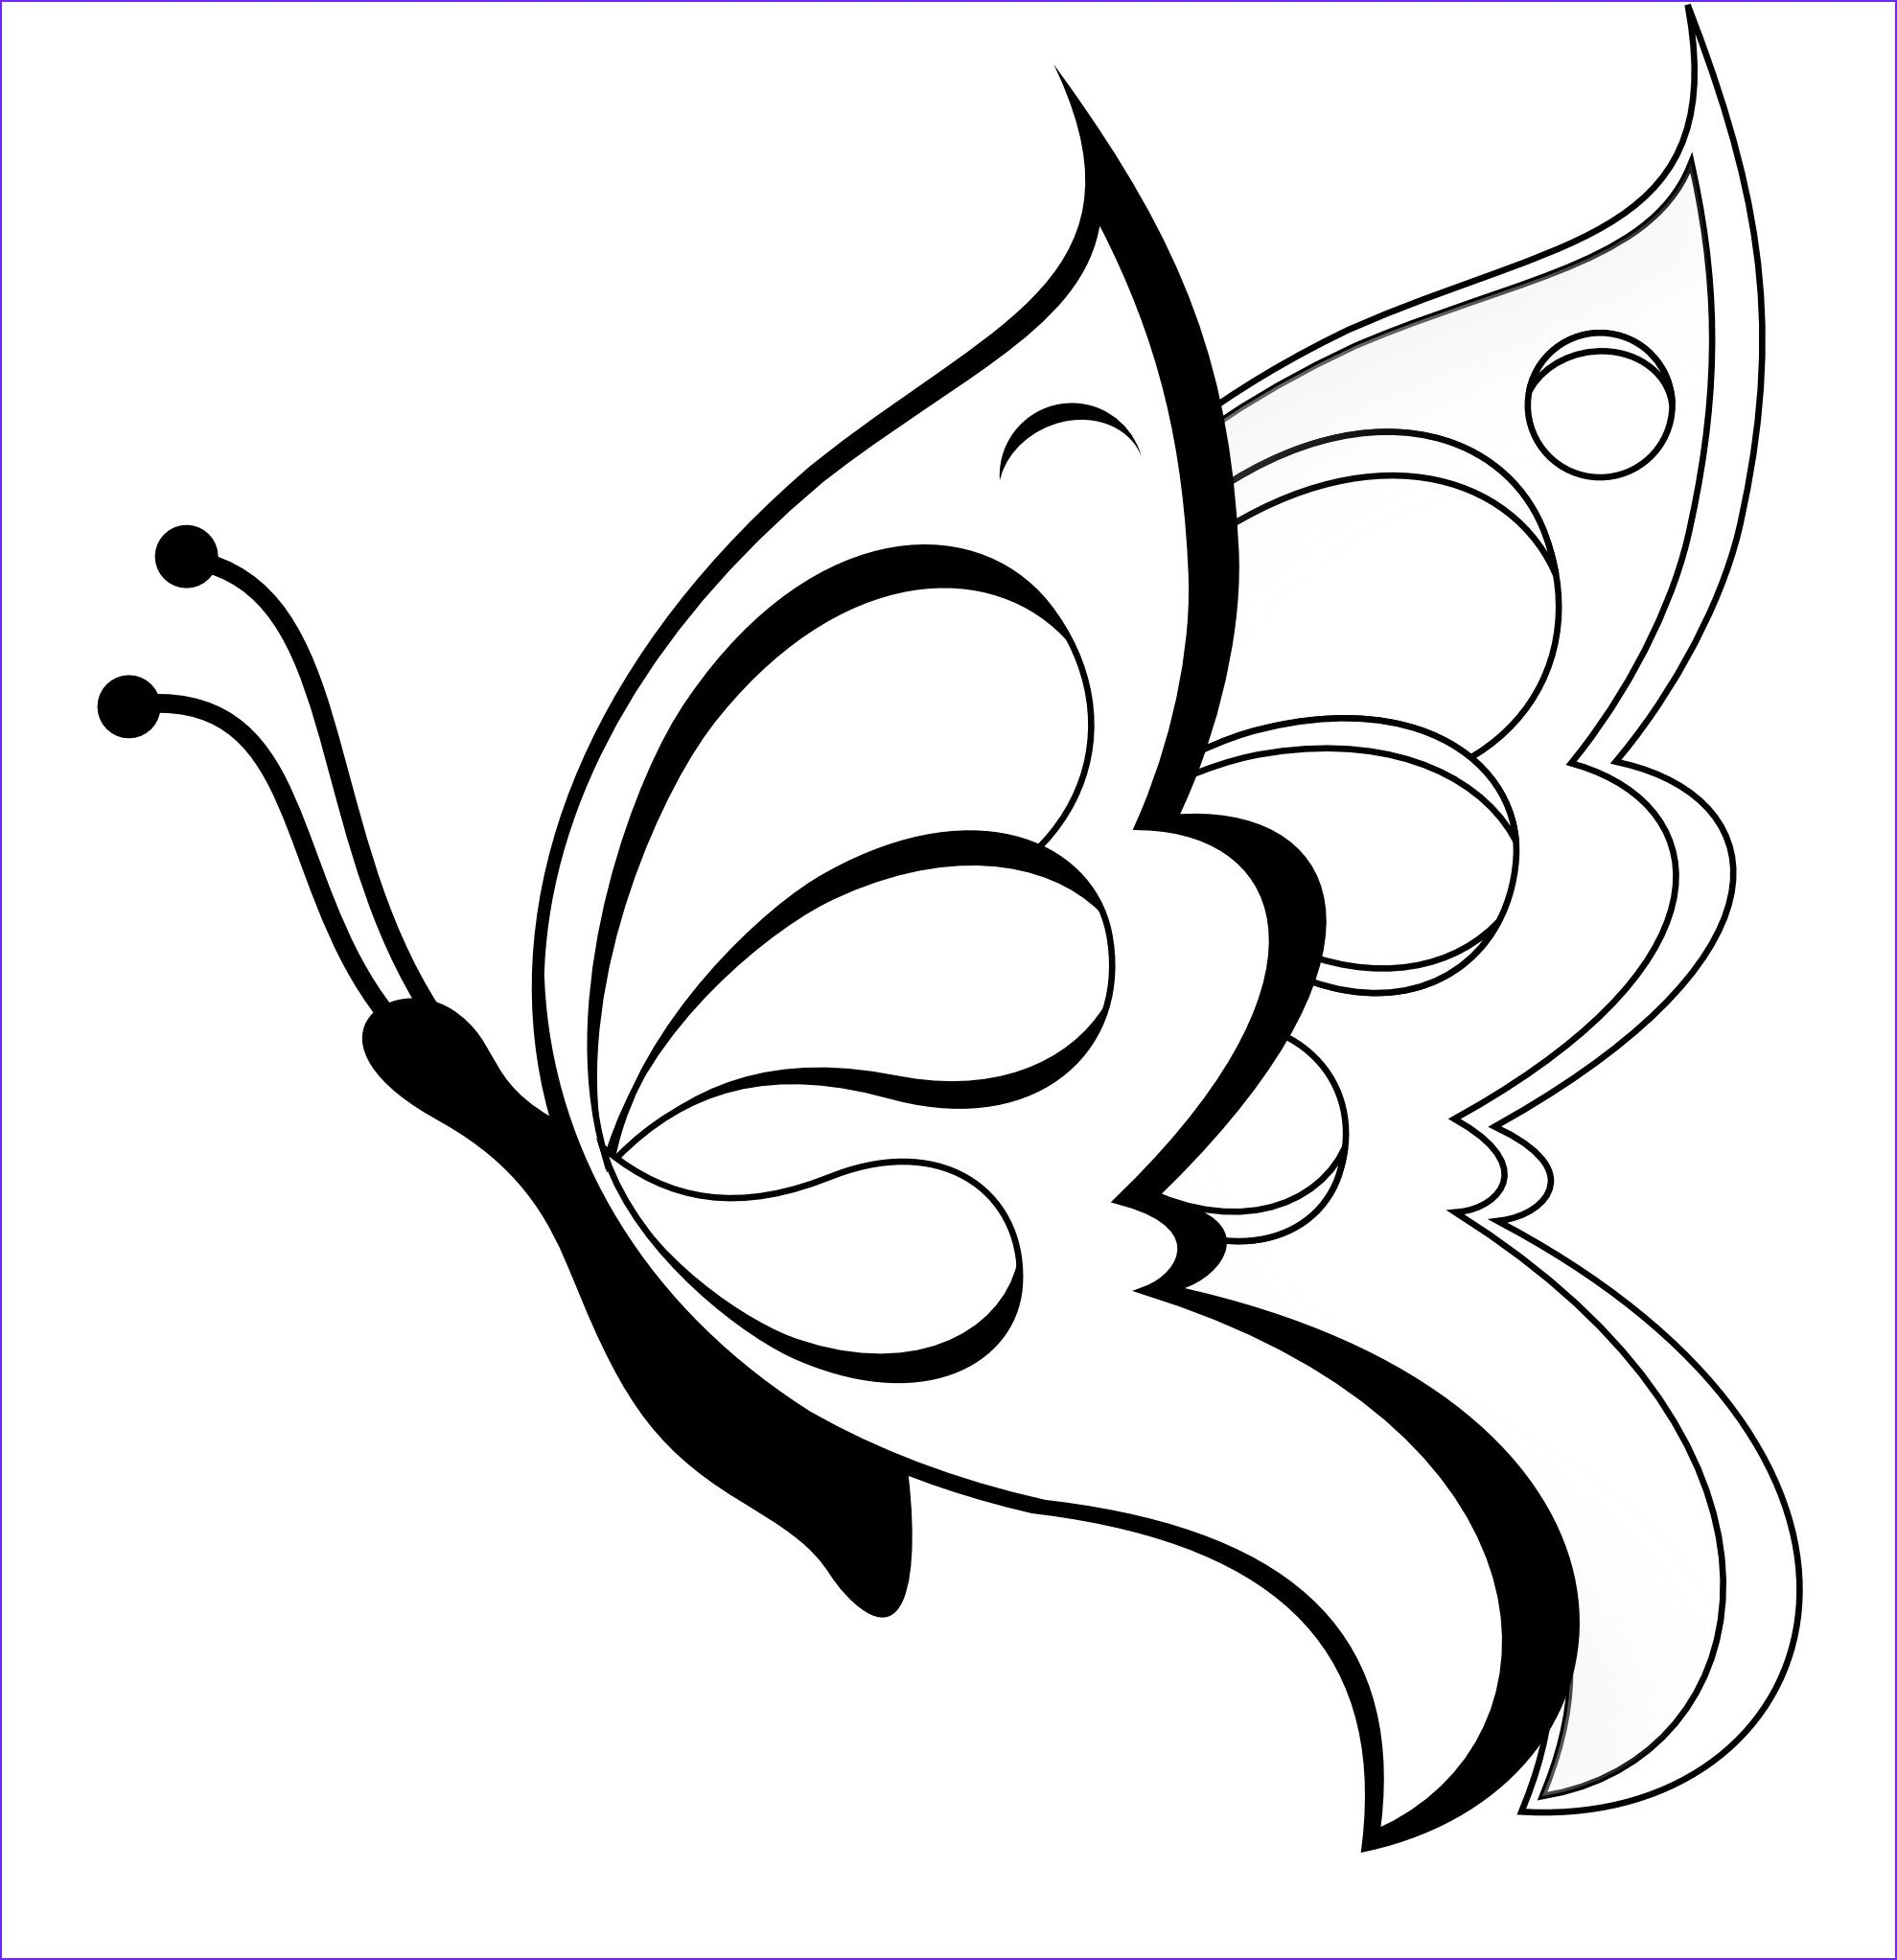 10 Best Of Butterfly Coloring Book Photos Butterfly Drawing Easy Butterfly Drawing Butterfly Sketch [ 2045 x 1979 Pixel ]